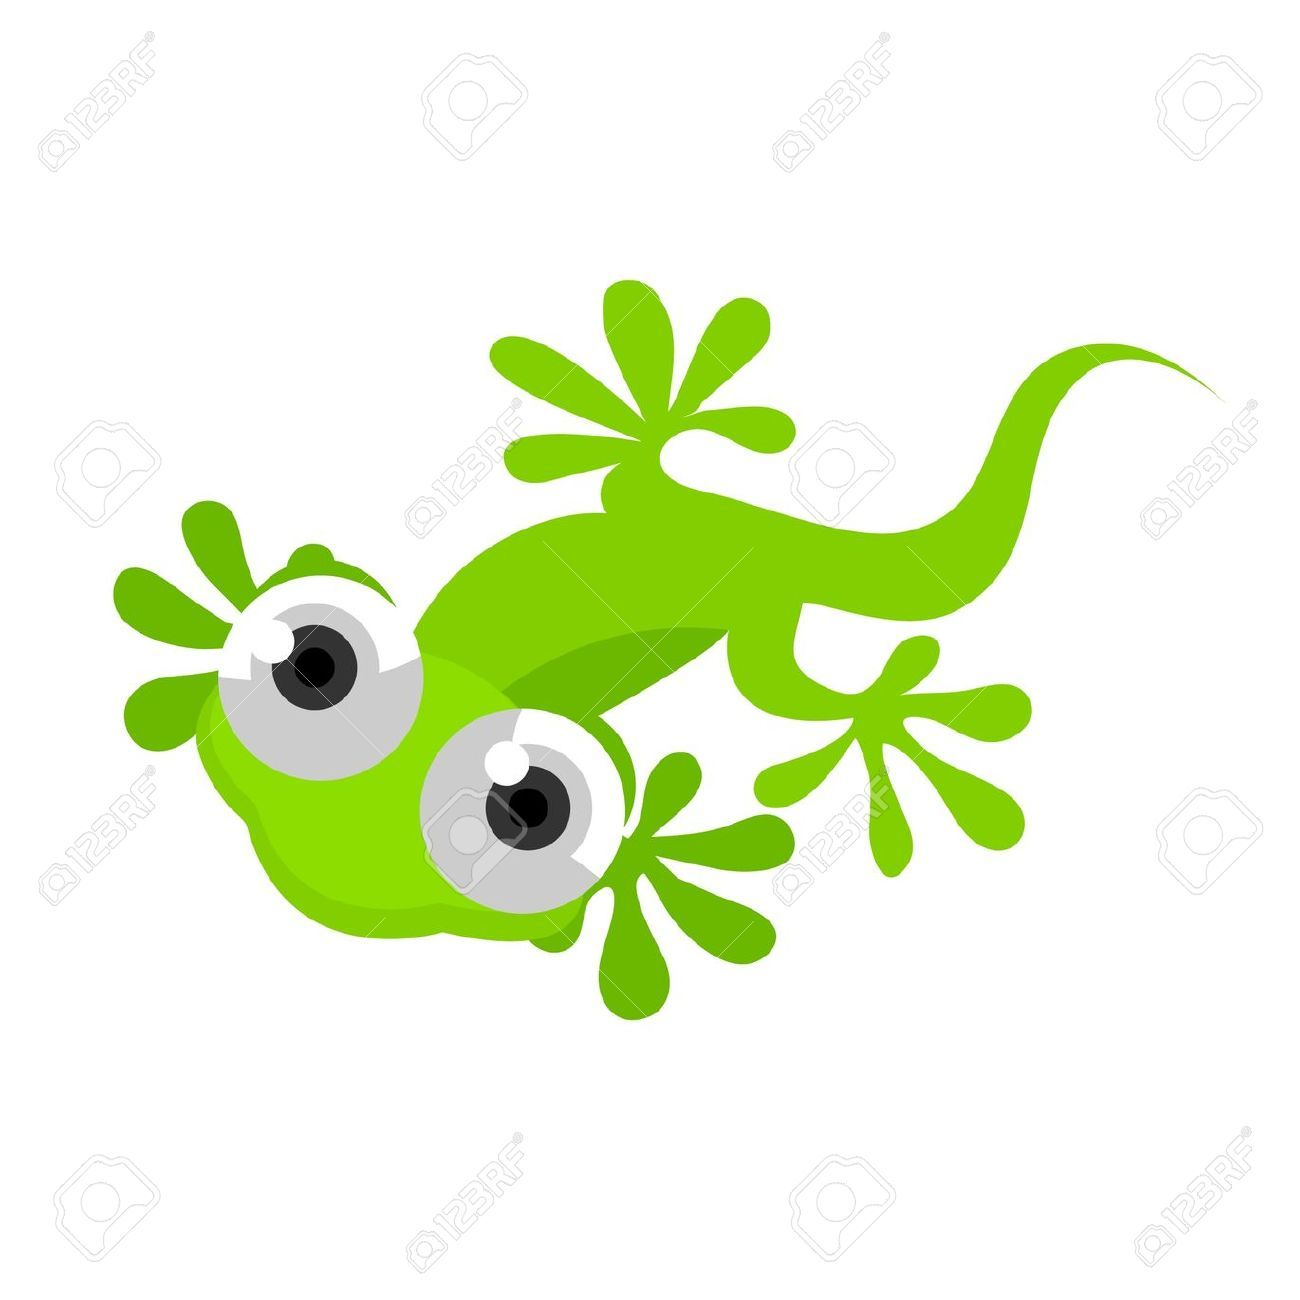 1300x1300 17964298 Gecko Stock Vector Cartoon Gecko Cute.jpg